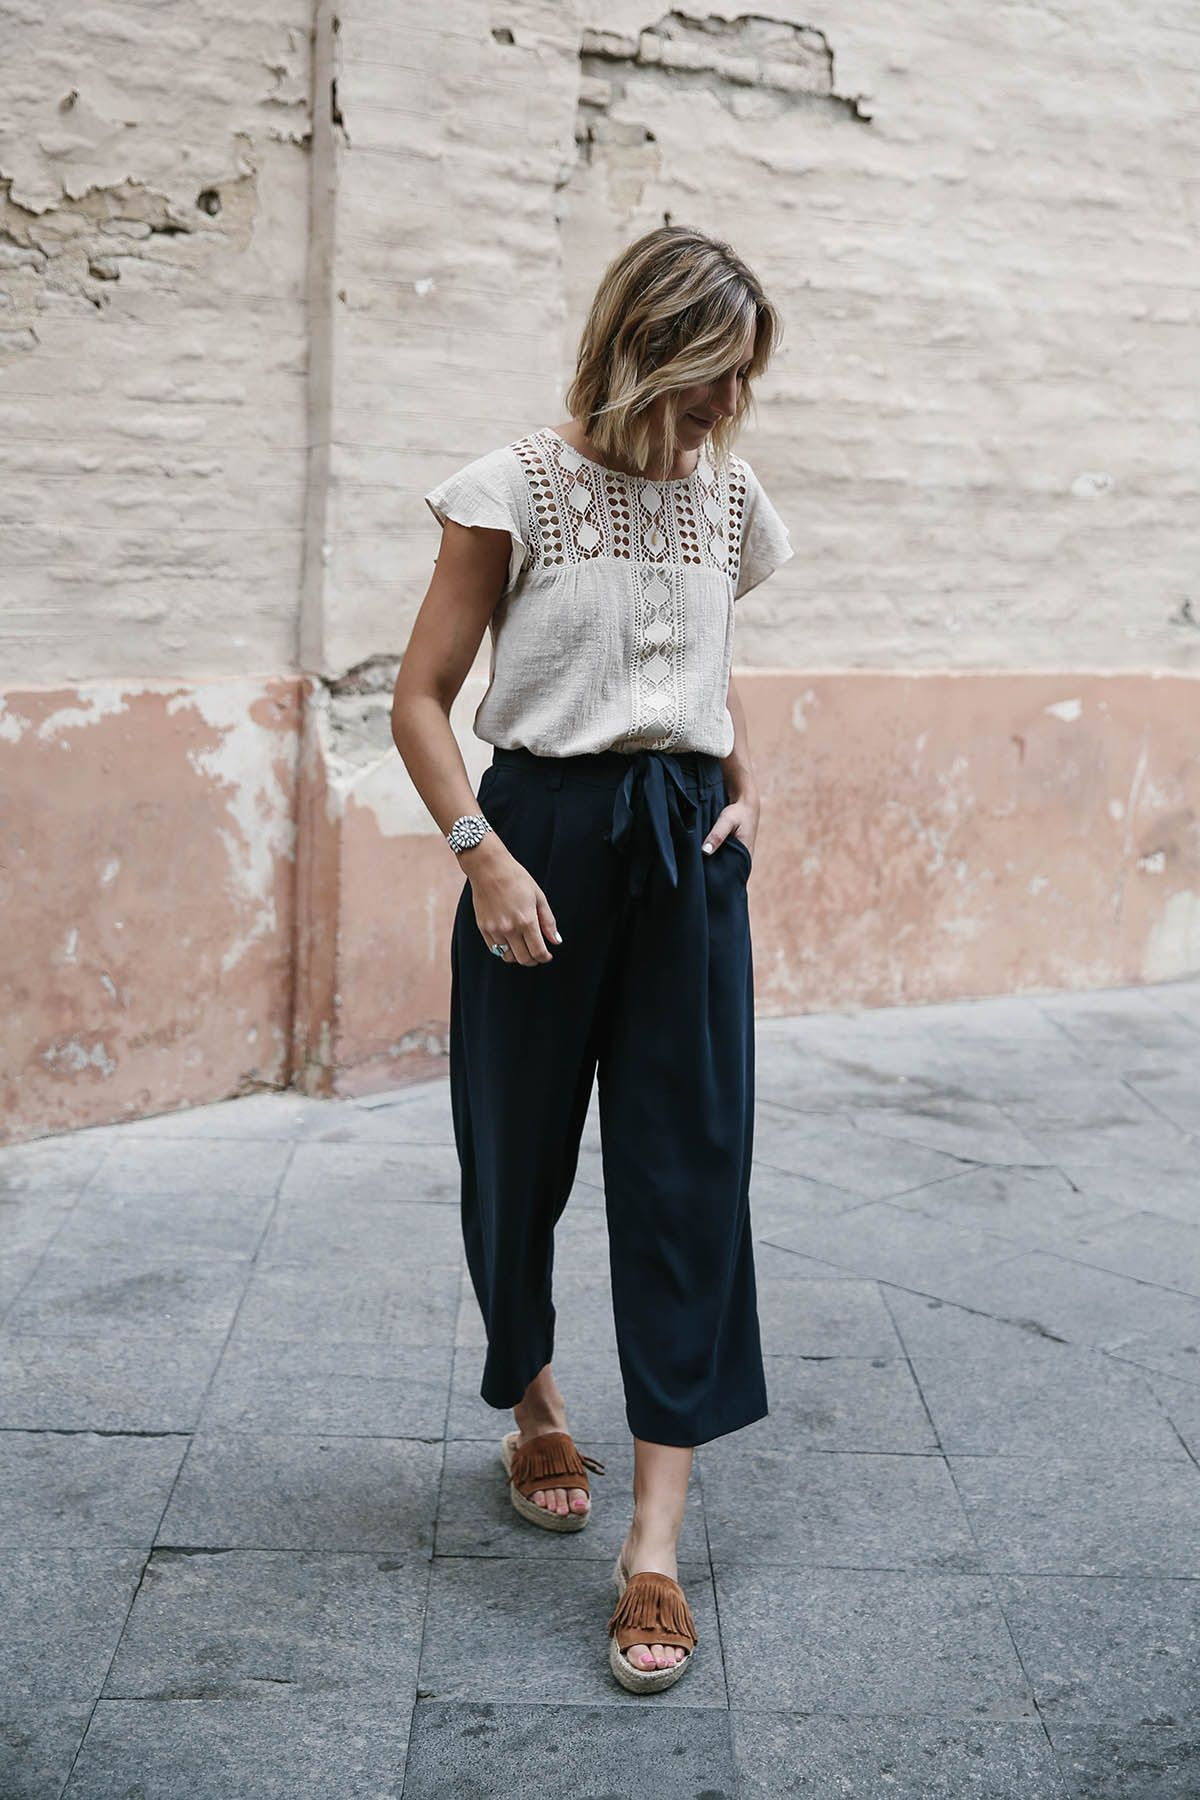 c5cc6b636a2a7 navy culottes outfit and crochet yoke top